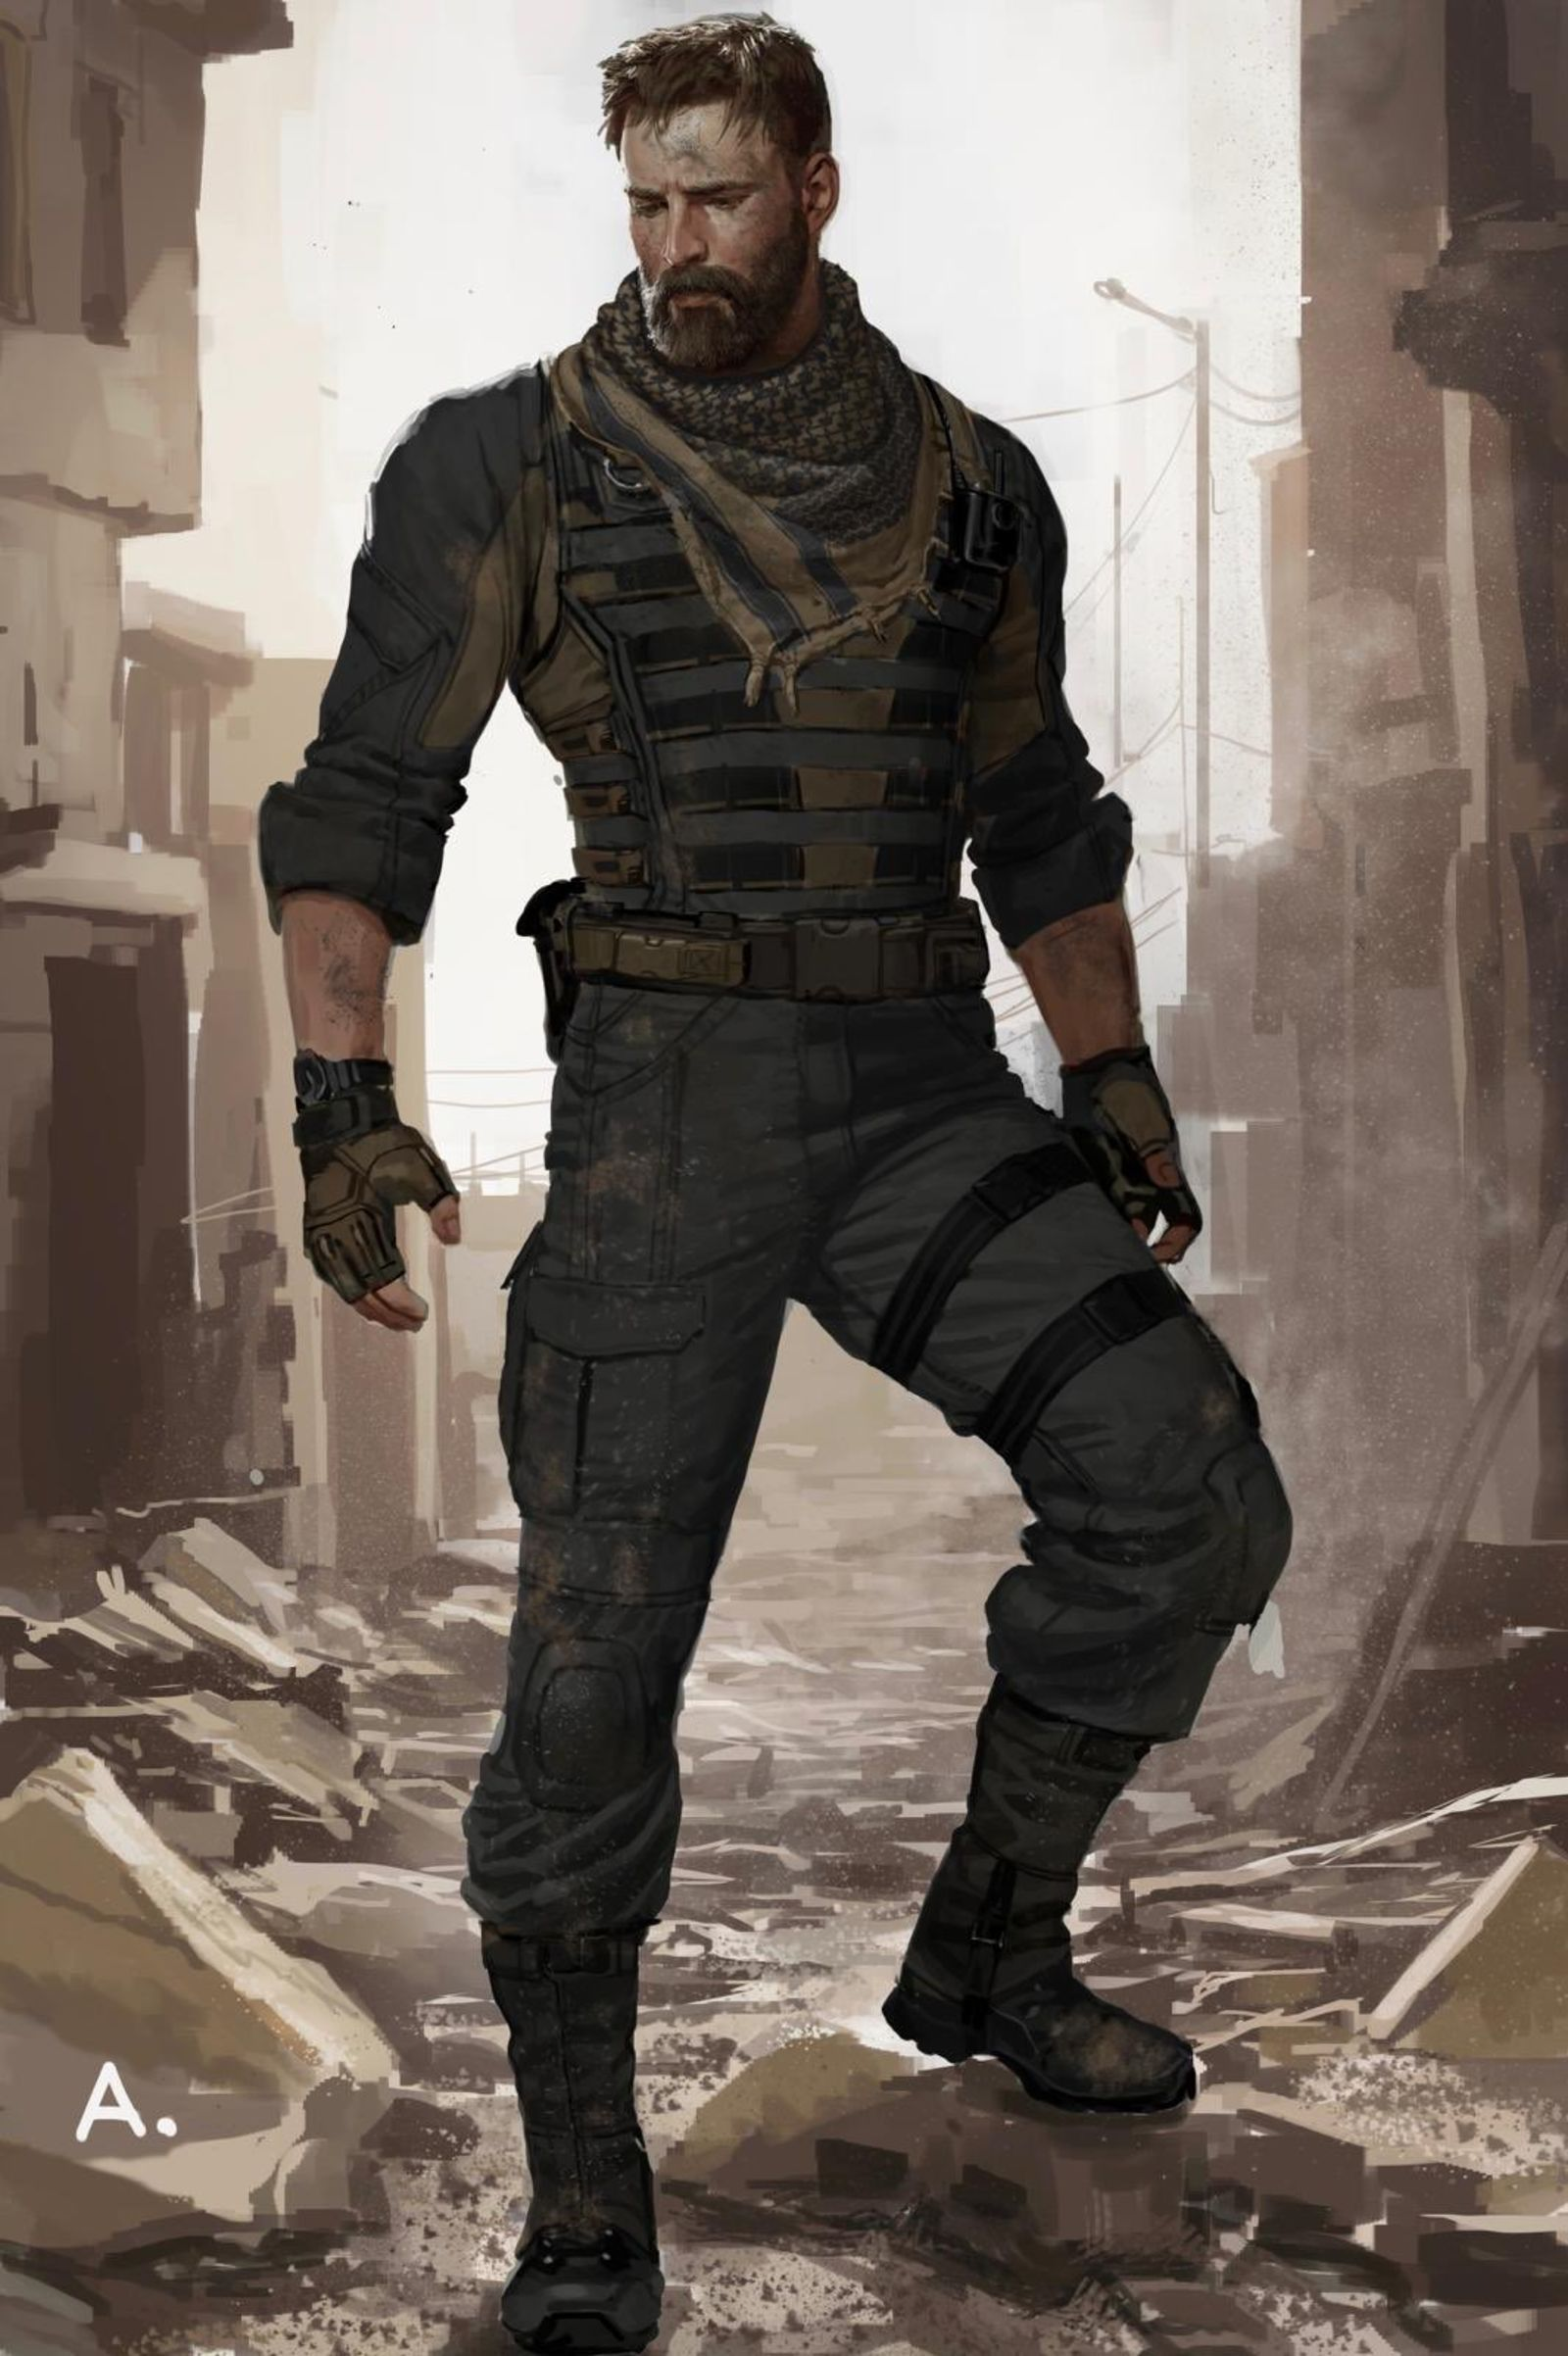 This Infinity War Concept Art of Captain America Without His Costume Rocks Our World